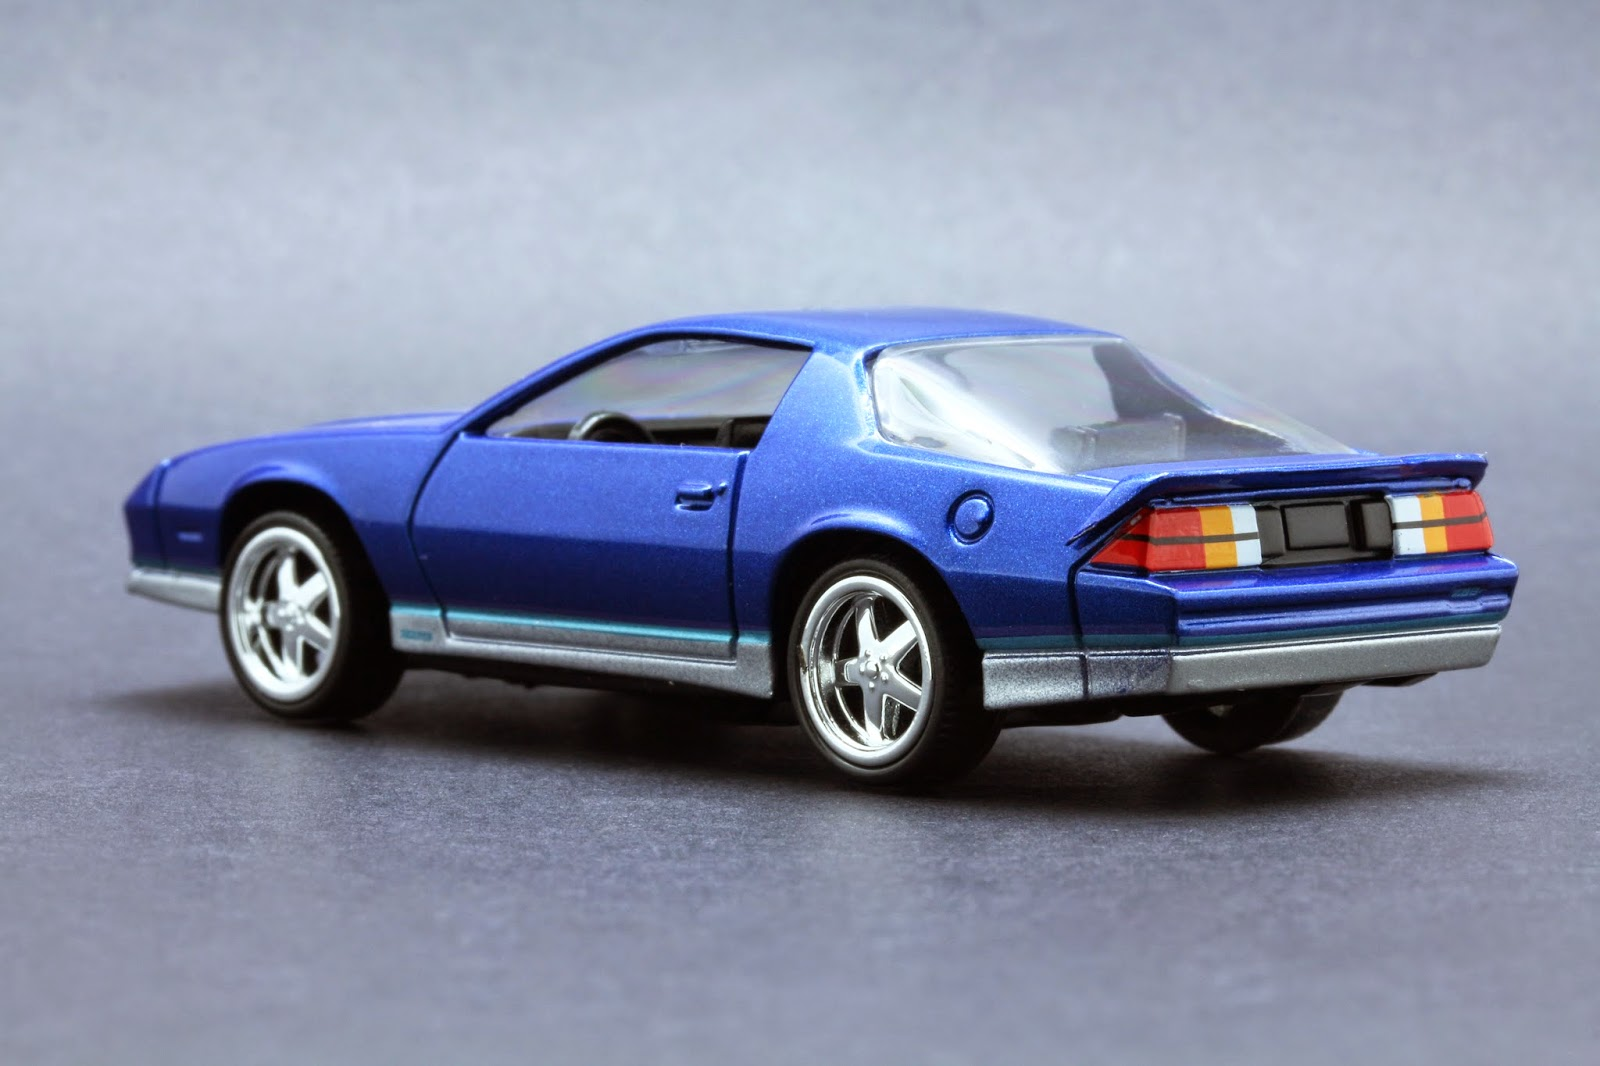 64 Scale Diecast from Autoworld Diecast Release 1 Version A